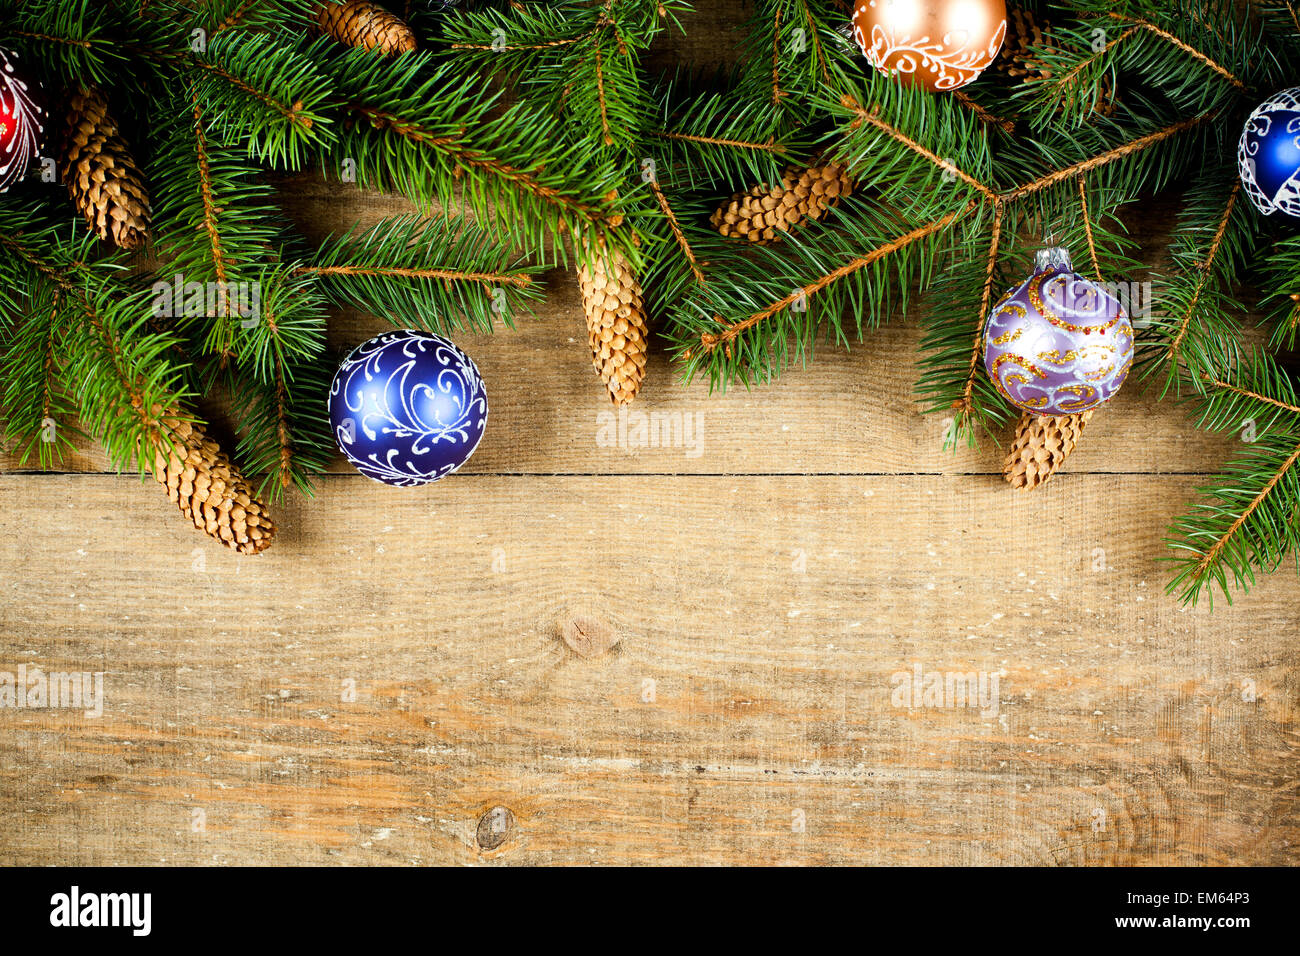 christmas fir tree with pinecones and decorations - Stock Image